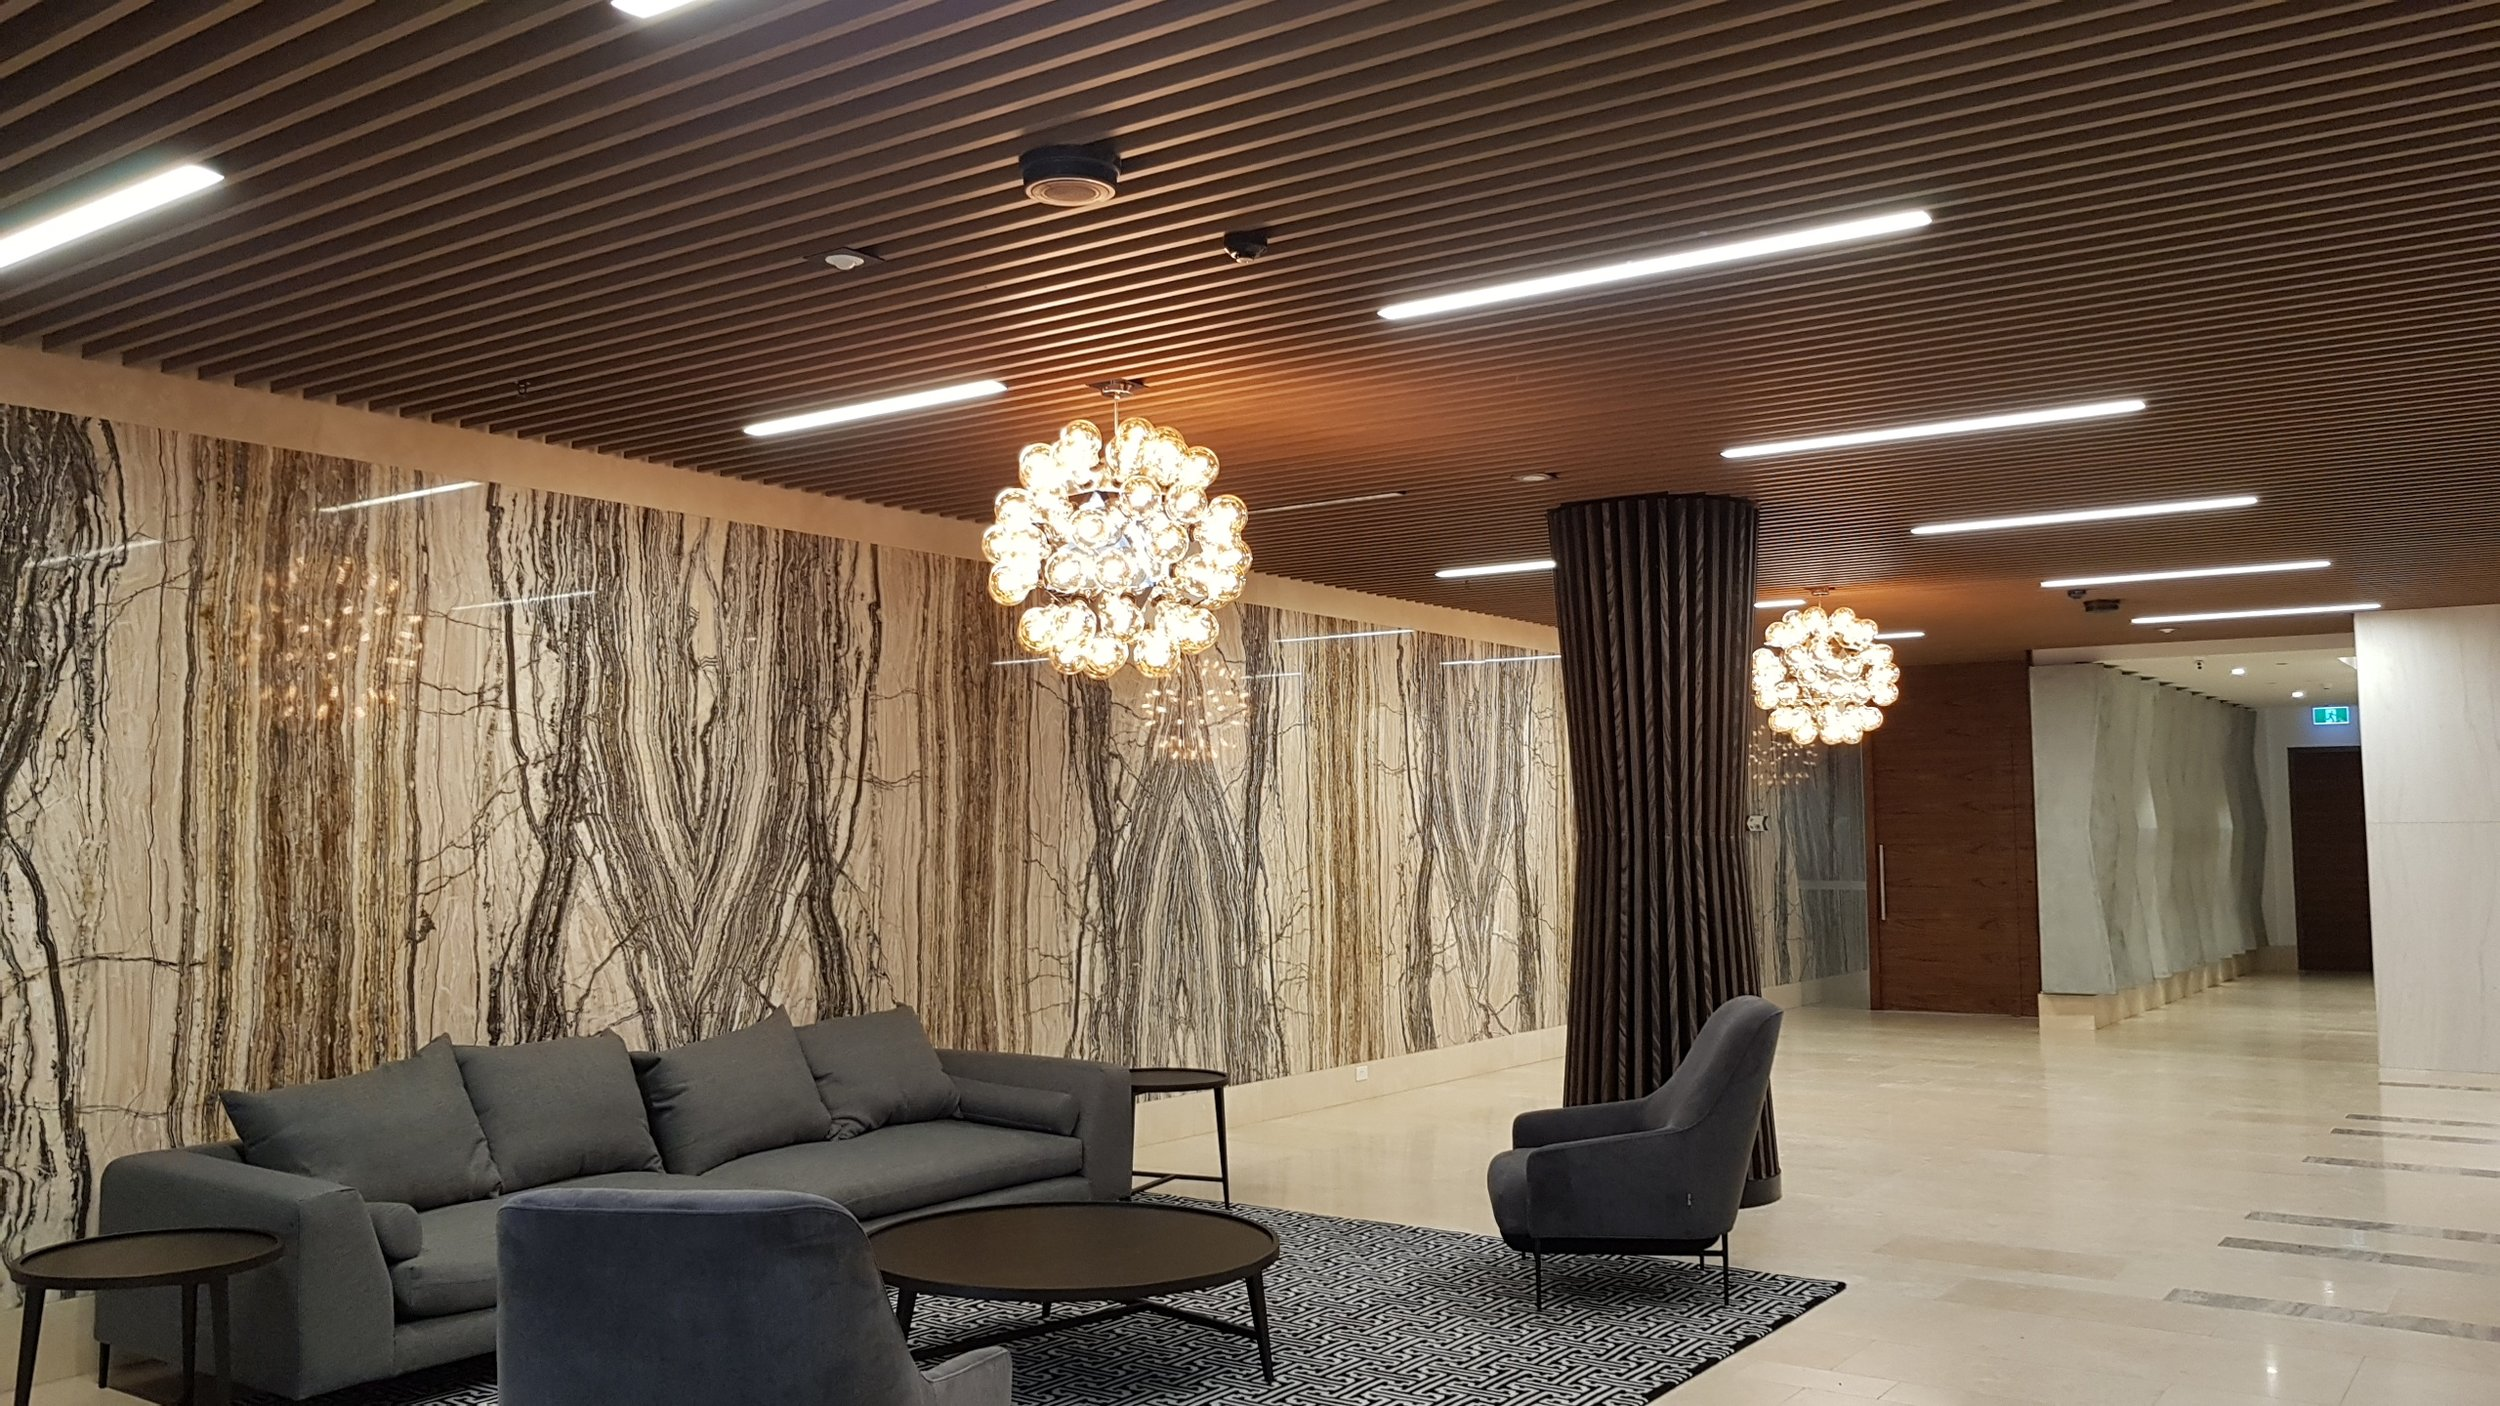 Lakeside Apartments Suspended Ceiling - Melbourne VIC Ever Art Wood® battens - Kabebari 30x85 in Kuri Masame; Custom powdercoated T section in Black